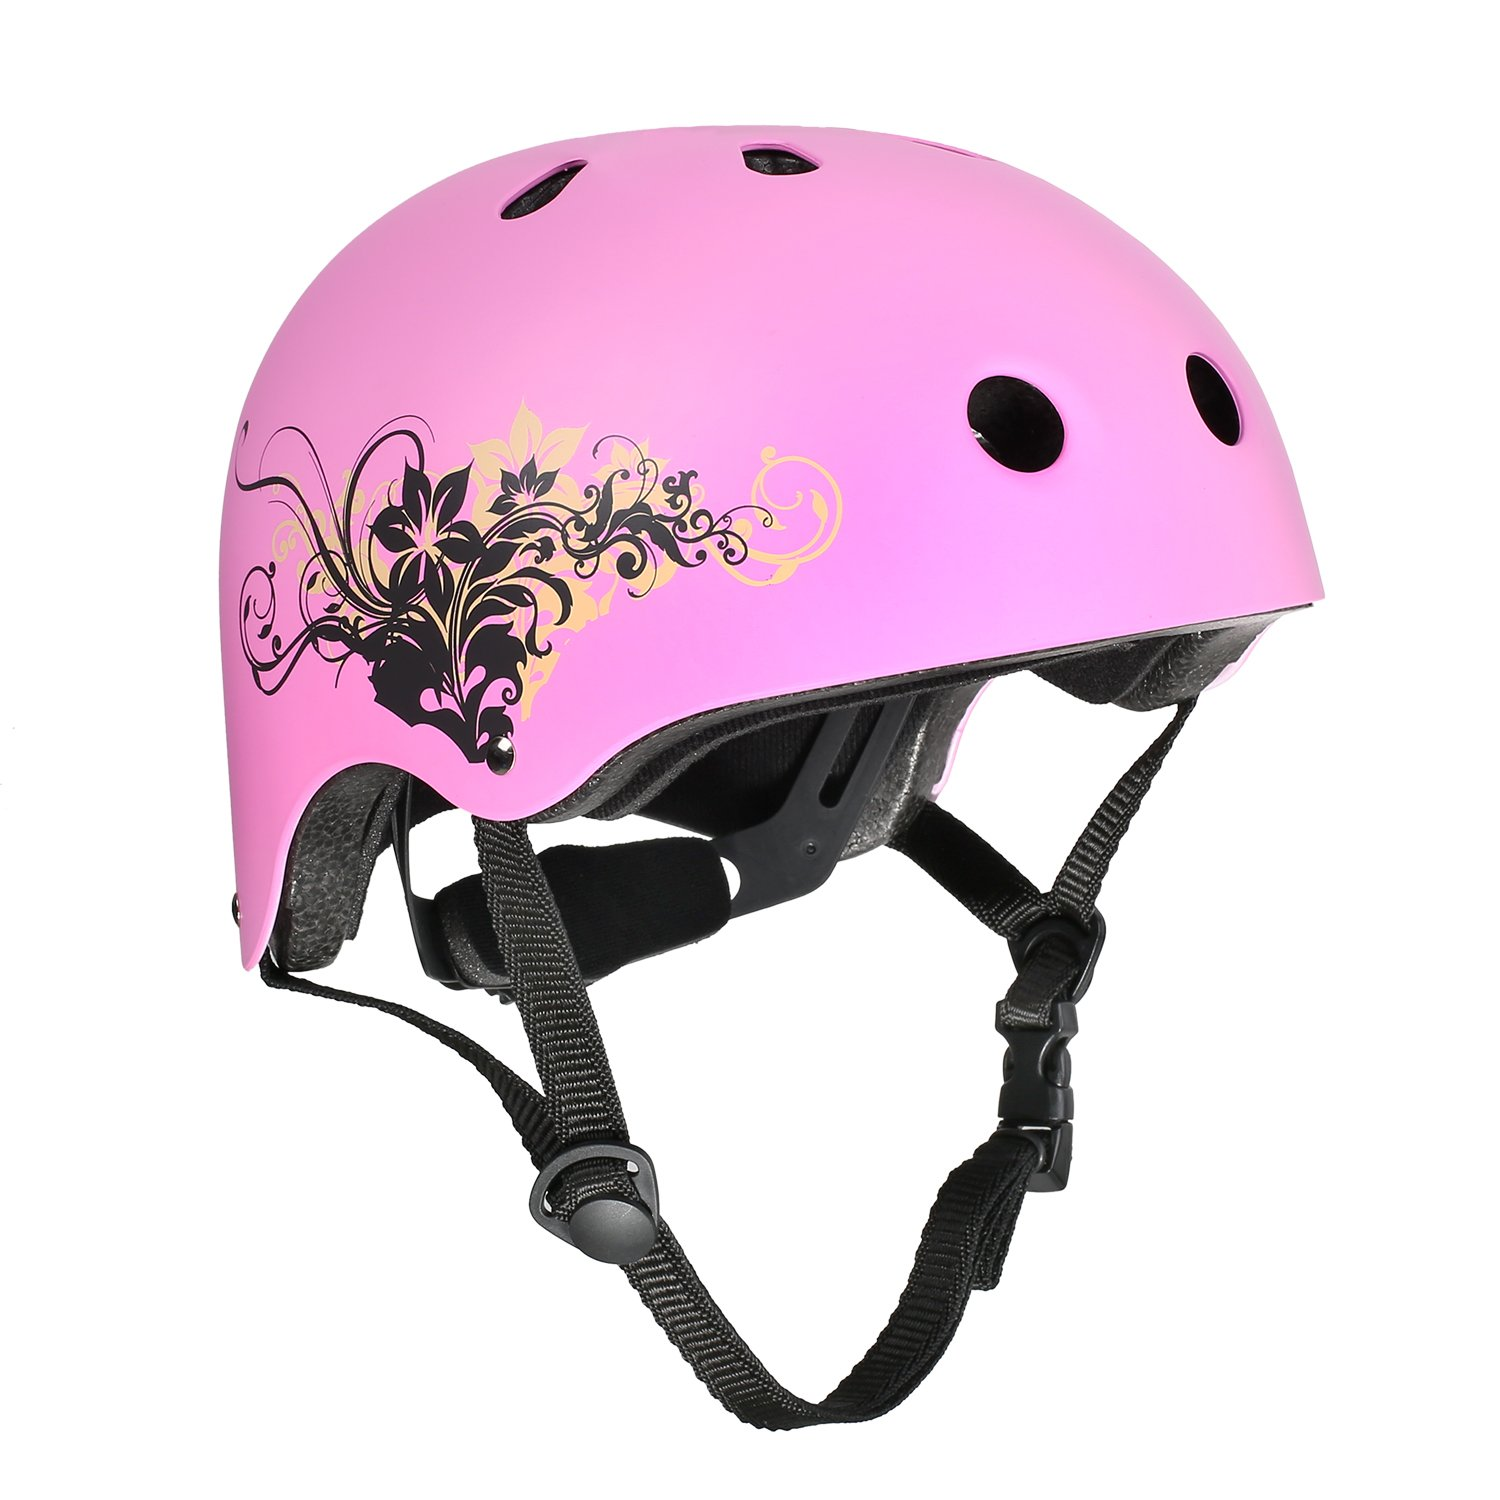 VOKUL Skate Helmet CPSC ASTM Certified Impact Resistance Ventilation for Kid/Youth/Adult Skateboarding Inline Skating Cycling and Other Outdoor Sports (Pink, S)